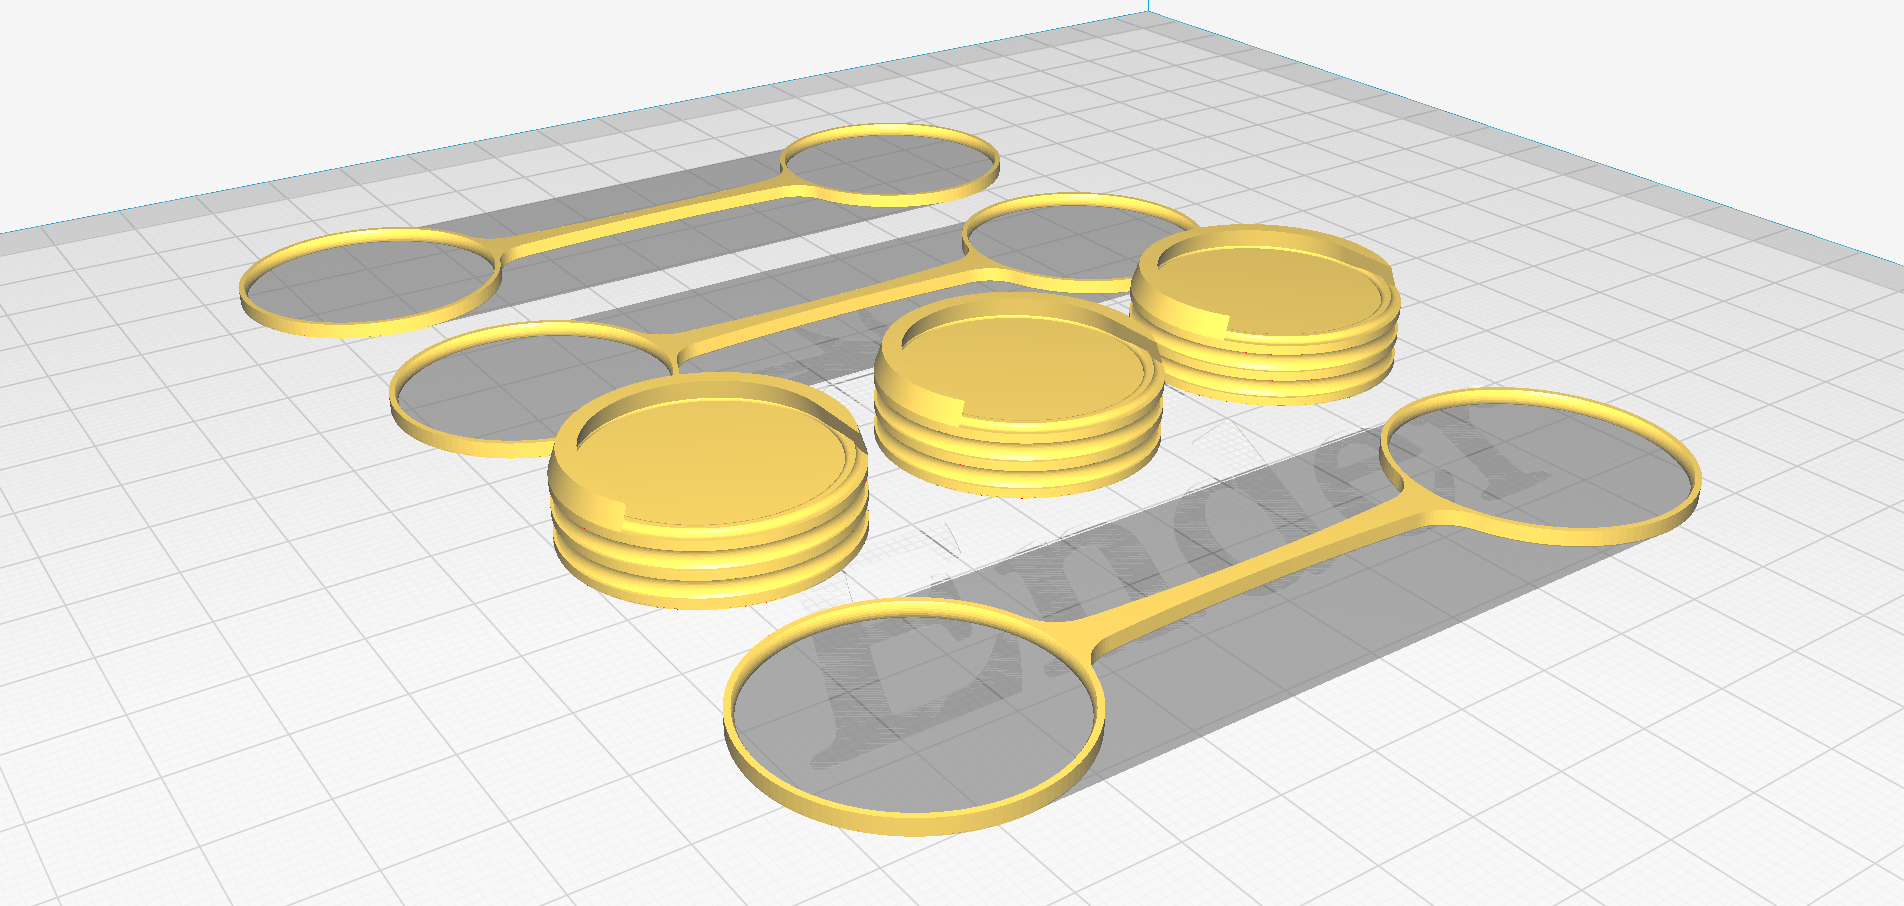 Cura_Example.png Download free STL file 25mm Max Unit Cohesion Movement Tray • Template to 3D print, aLazyCamper